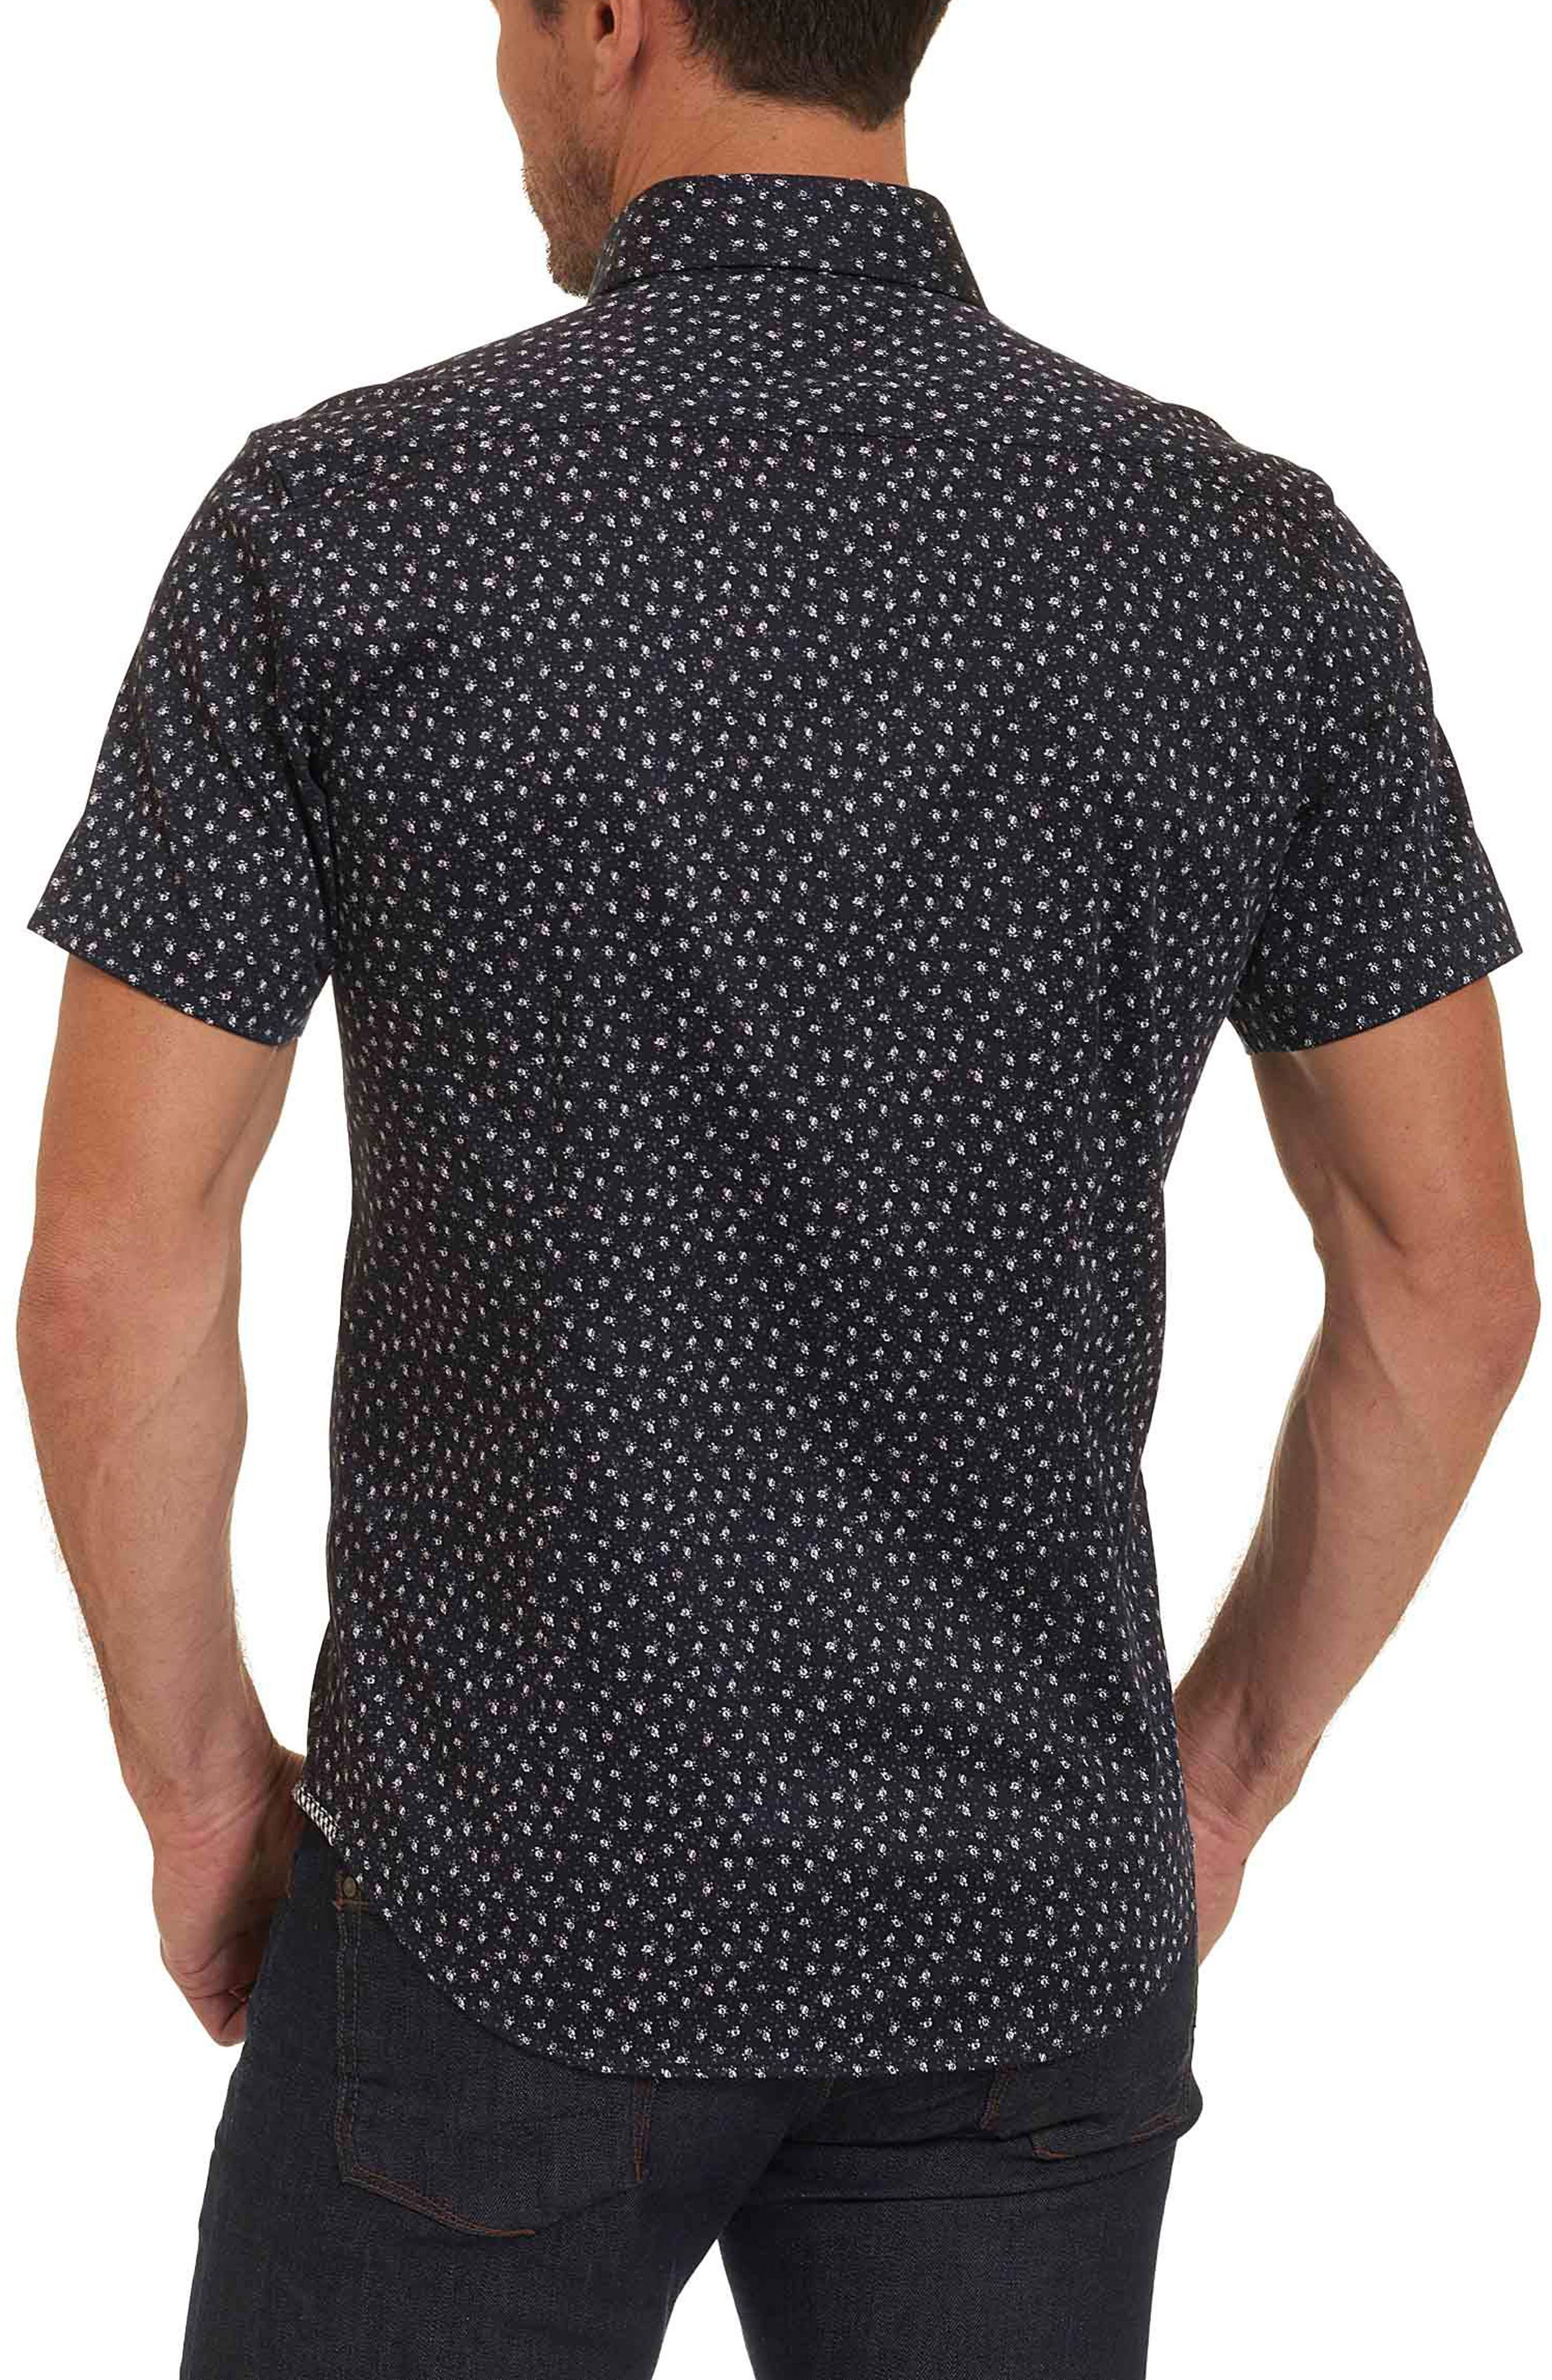 Miki Tailored Fit Print Short Sleeve Sport Shirt,                             Alternate thumbnail 2, color,                             001